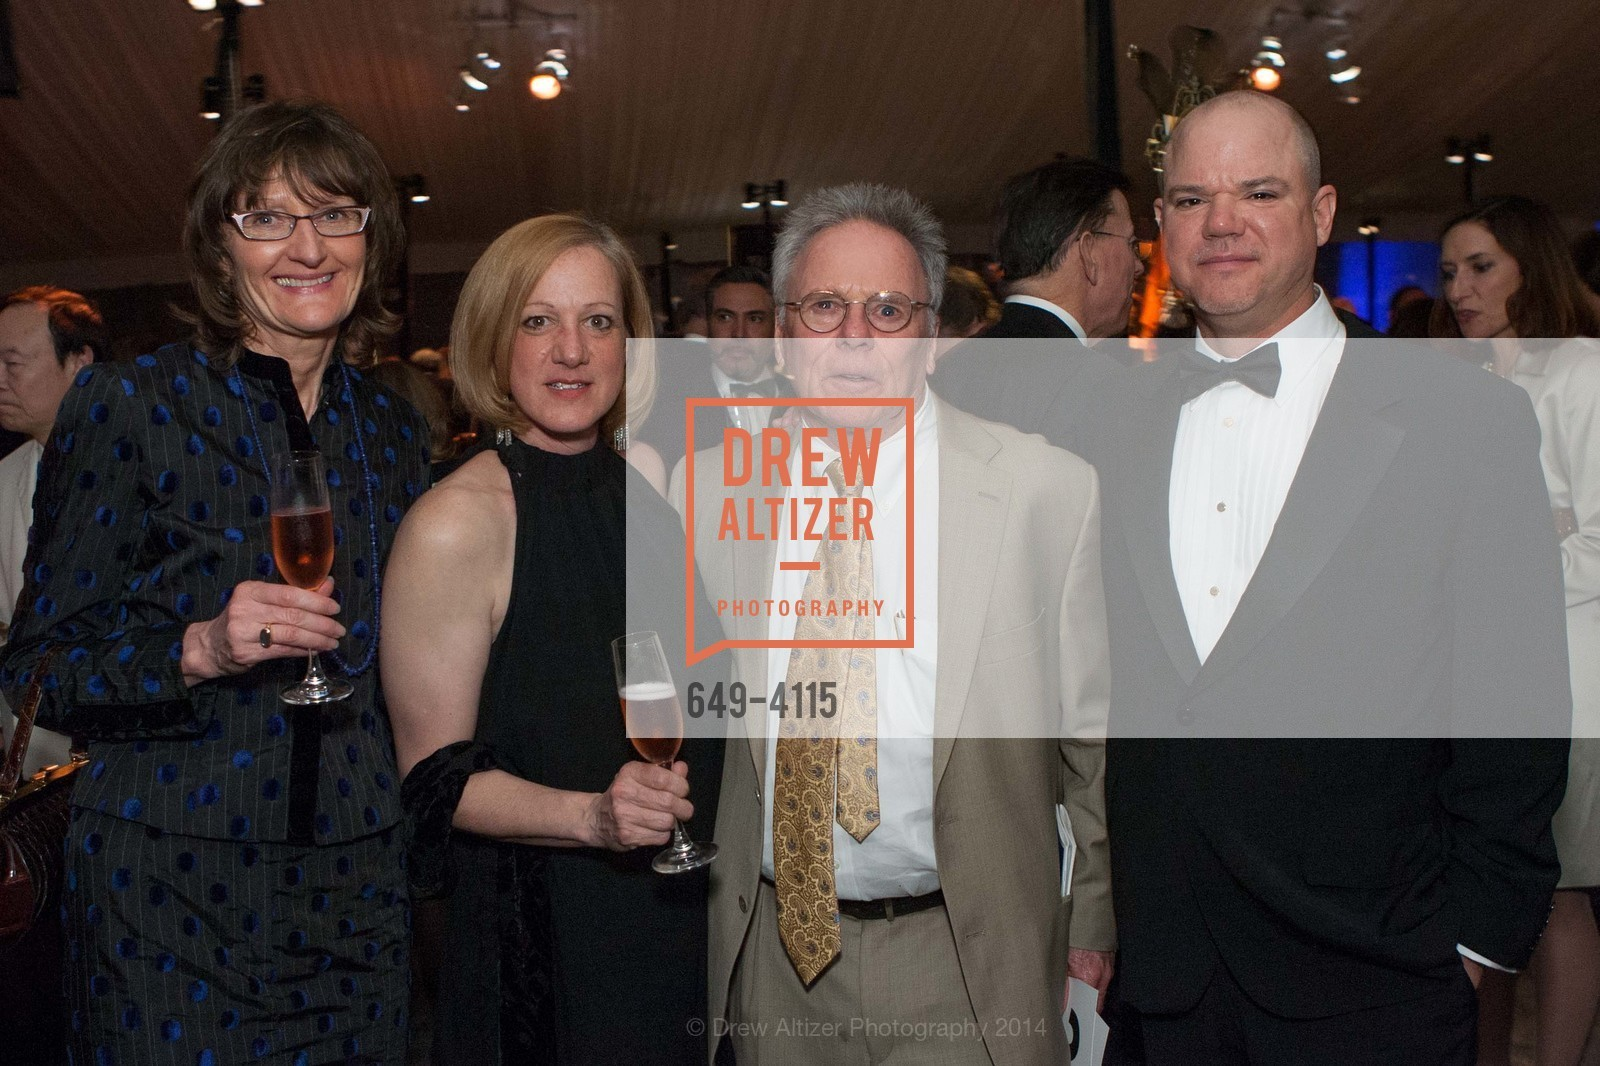 Martine Krause, Kenzie Genovese, Bob Jarman, Stuart Alexander, Photo #649-4115